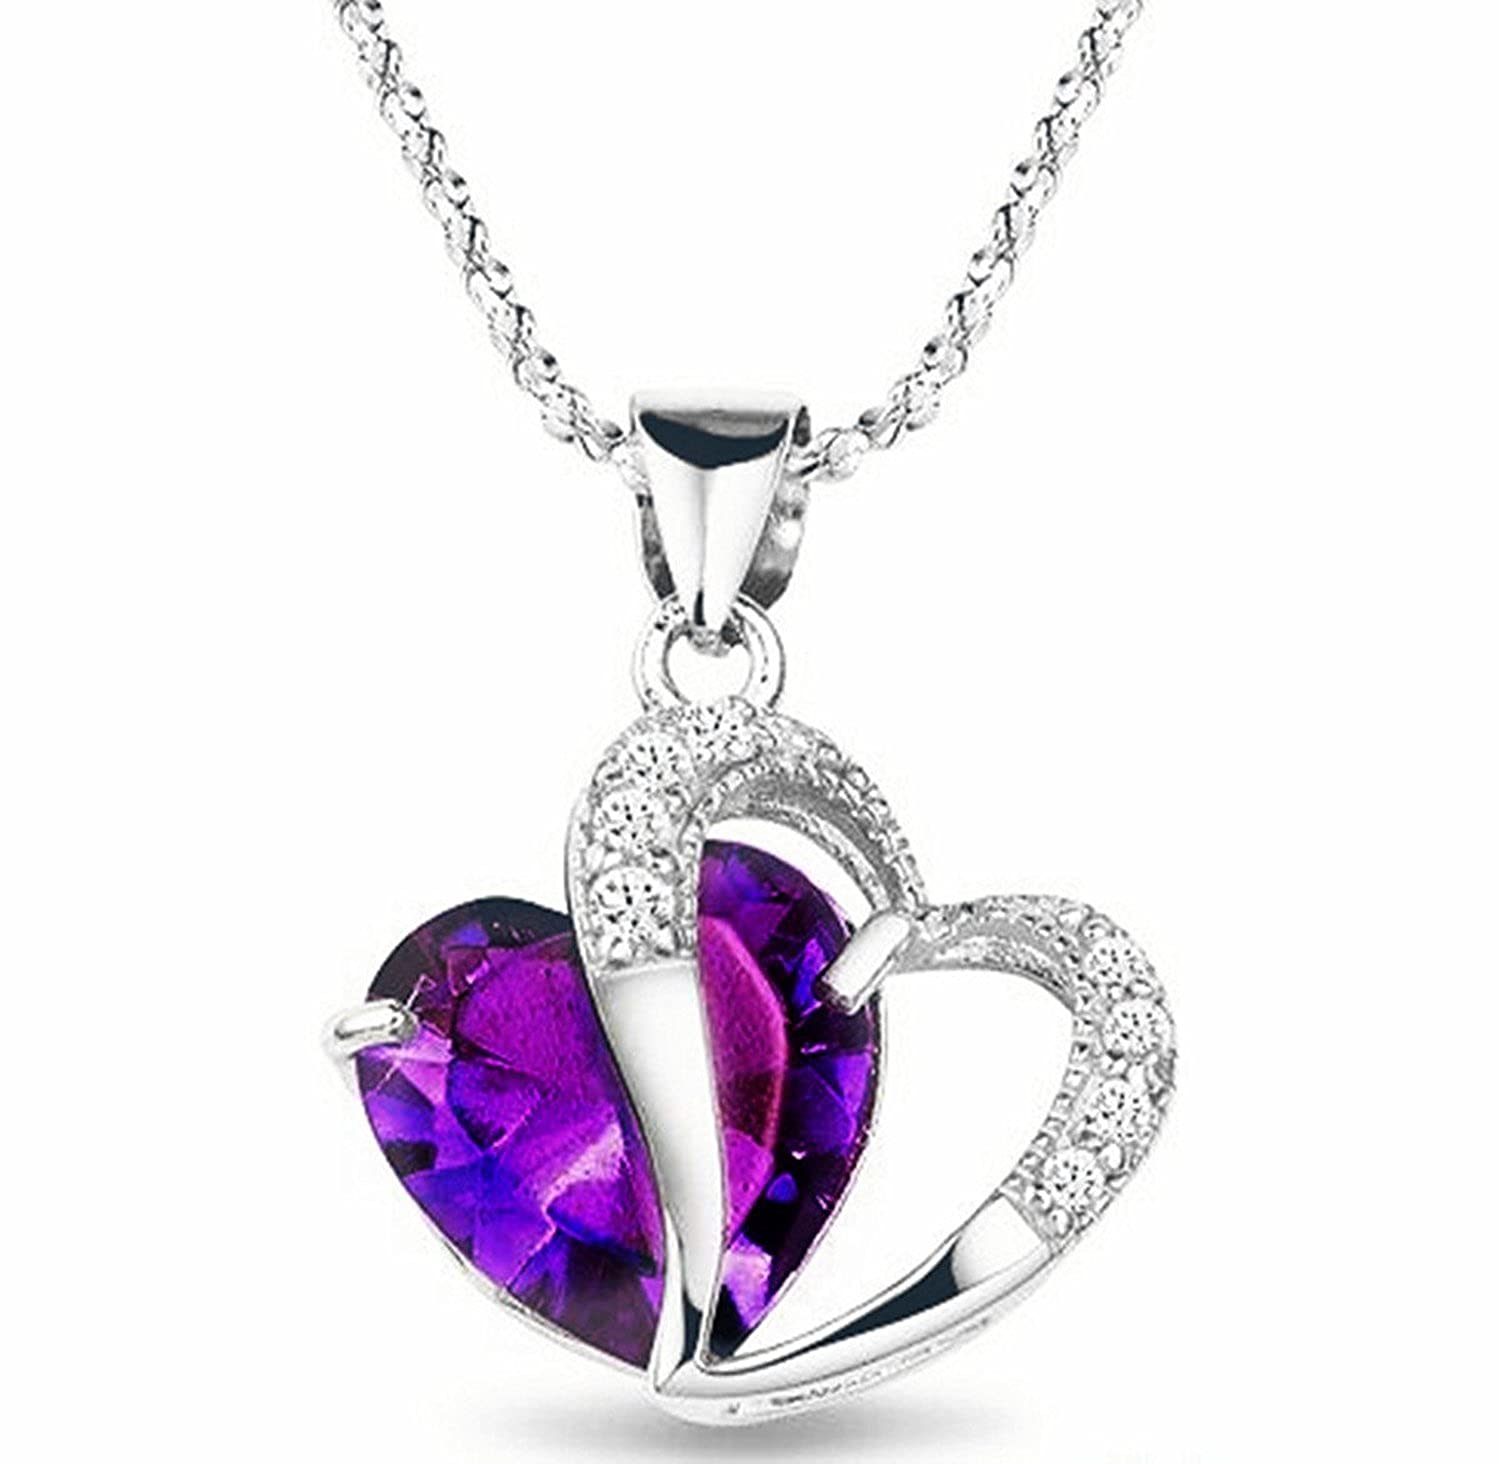 images collections search necklace of sandi pointe purple library virtual heart